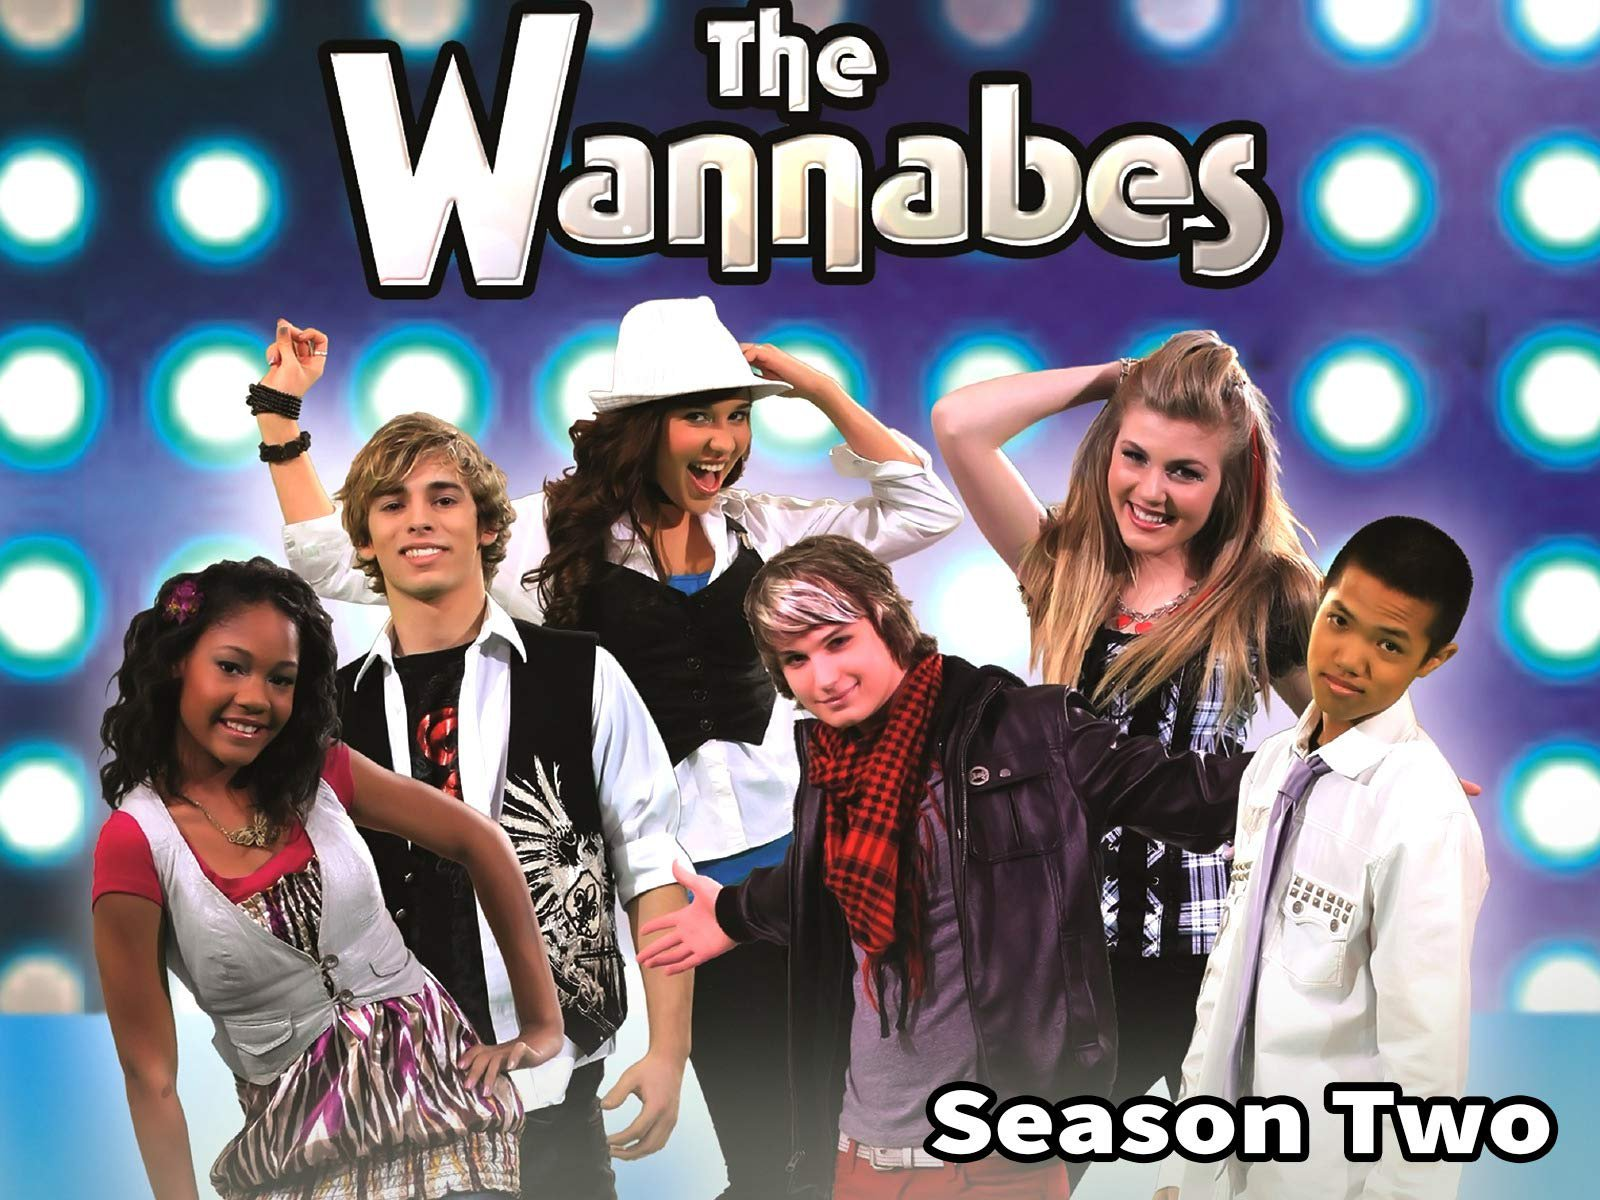 The Wannbes